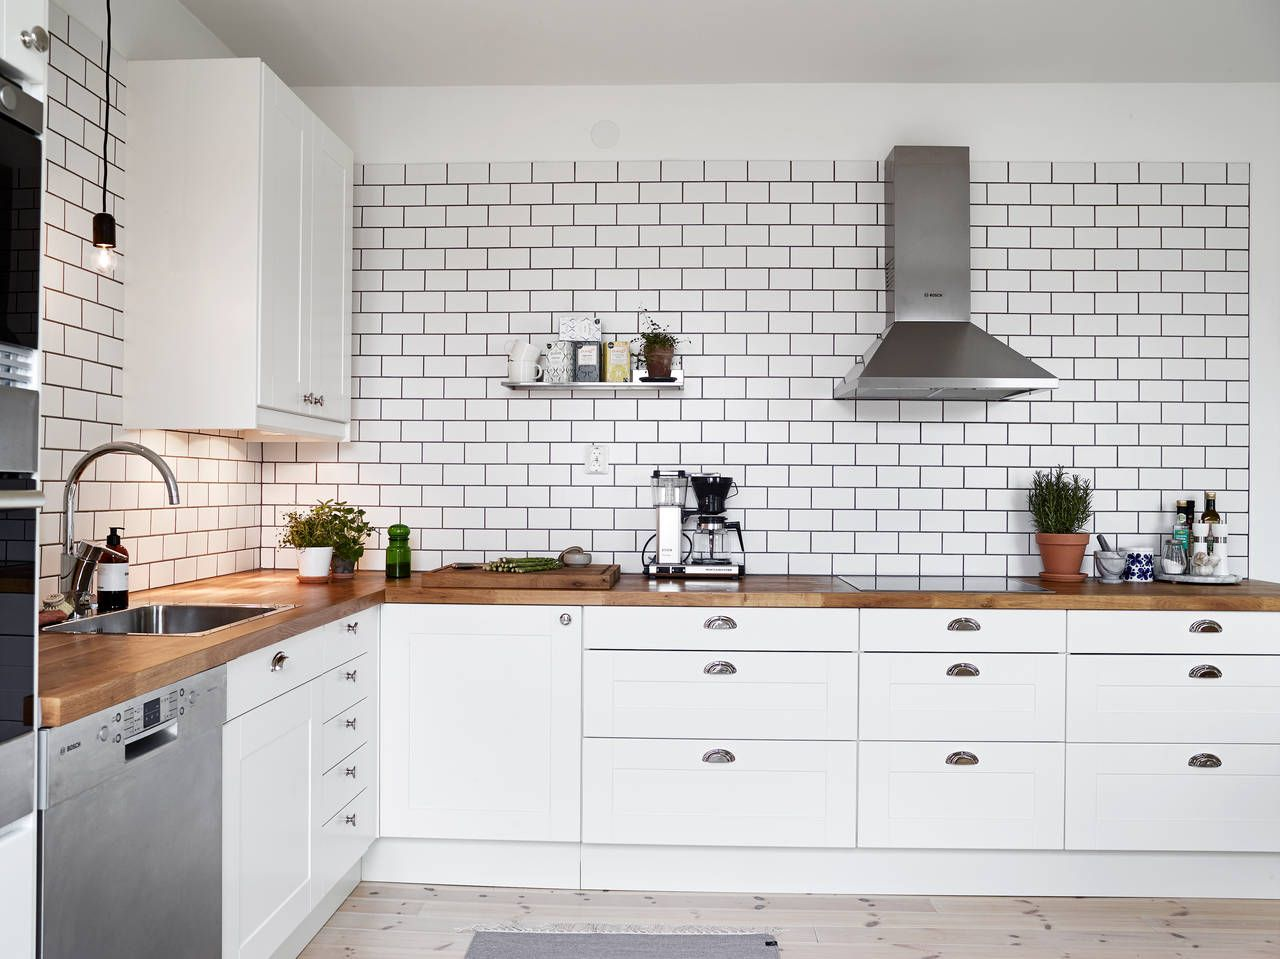 black and white tile kitchen outdoor grills a tiles grout kind of coco lapine design are still my dream backsplash for future non rental i